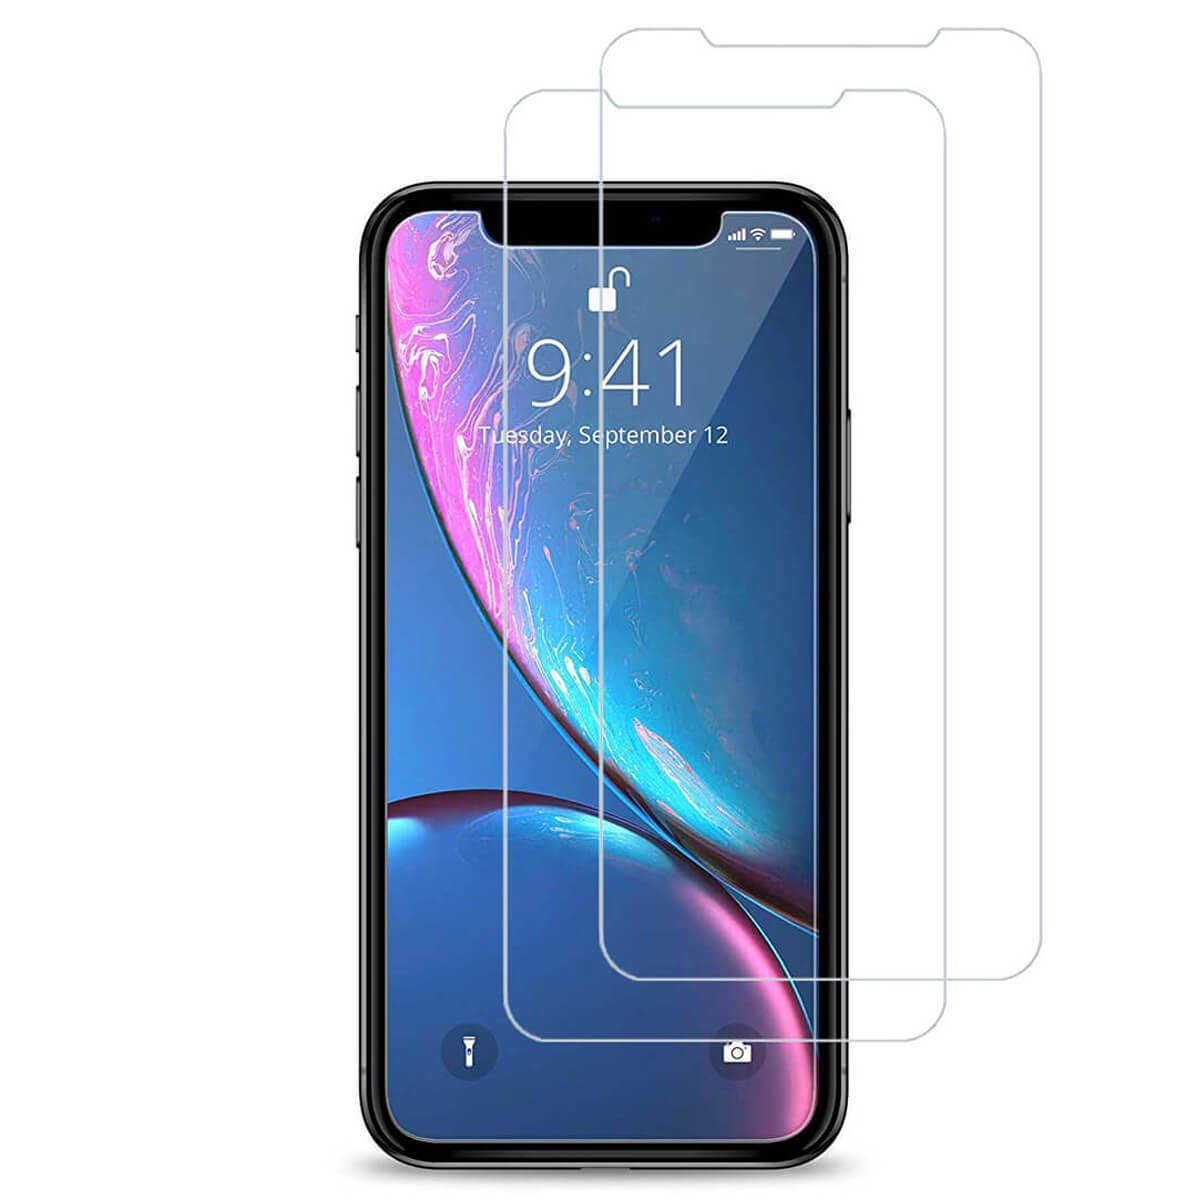 Tempered-Glass-Film-Screen-Protector-For-iPhone-12-Pro-Max-Mini-XR-XS-Max-8-7-6s thumbnail 35